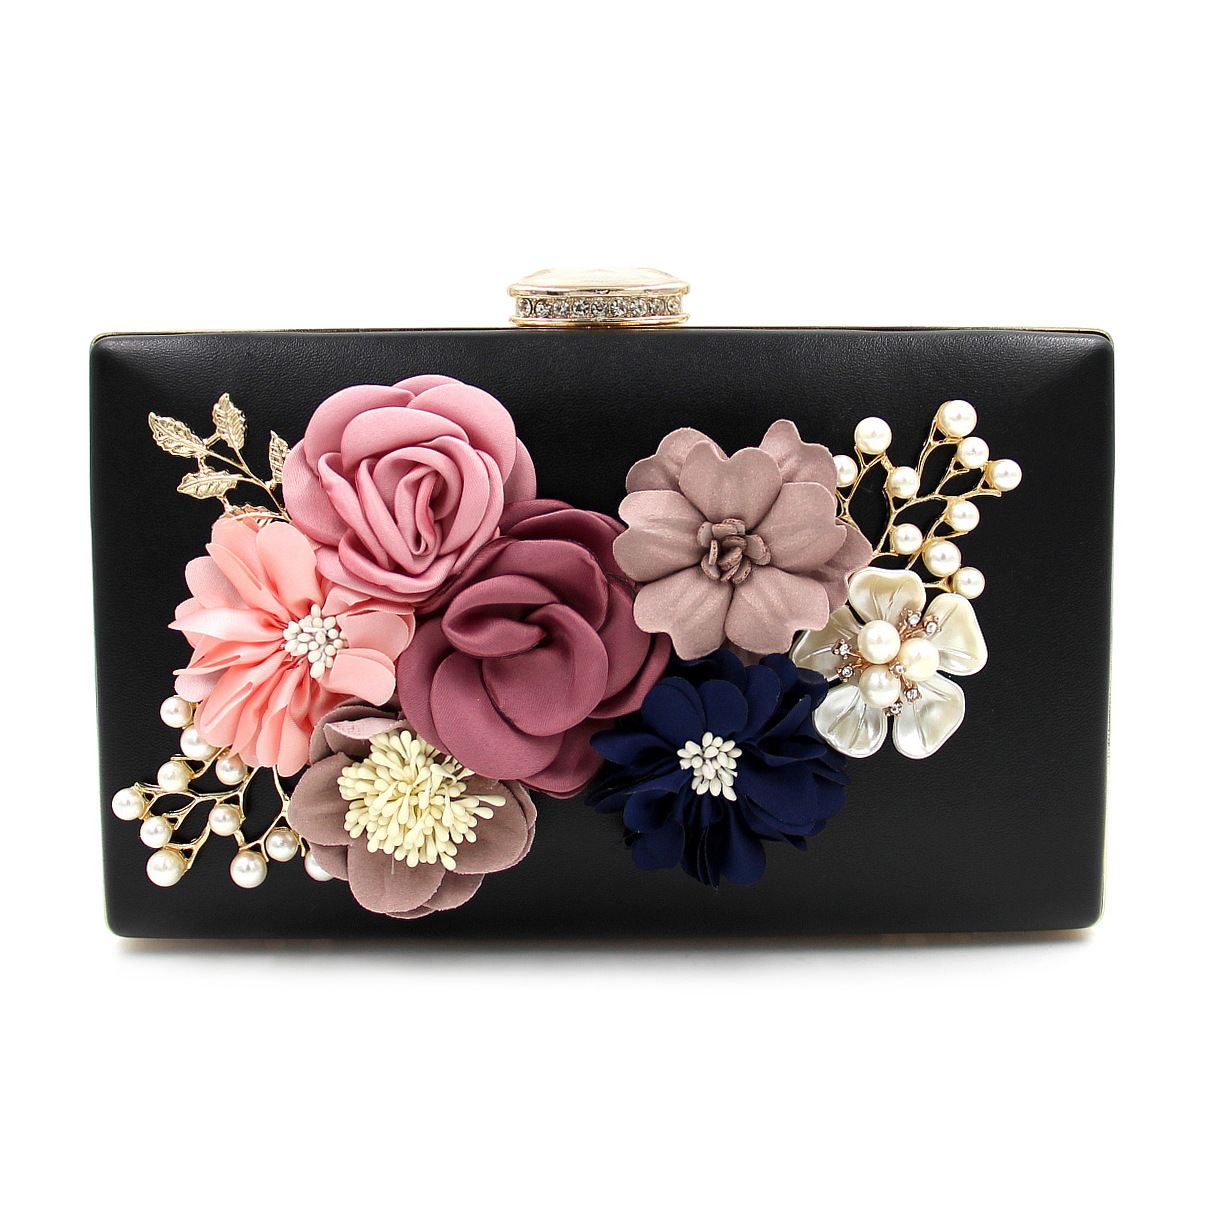 2017 Flower Women Evening Bags For Wedding Beads Embroidery Day Clutch Purses Diamond Pearl Evening Bag Party Messenger Bags<br>